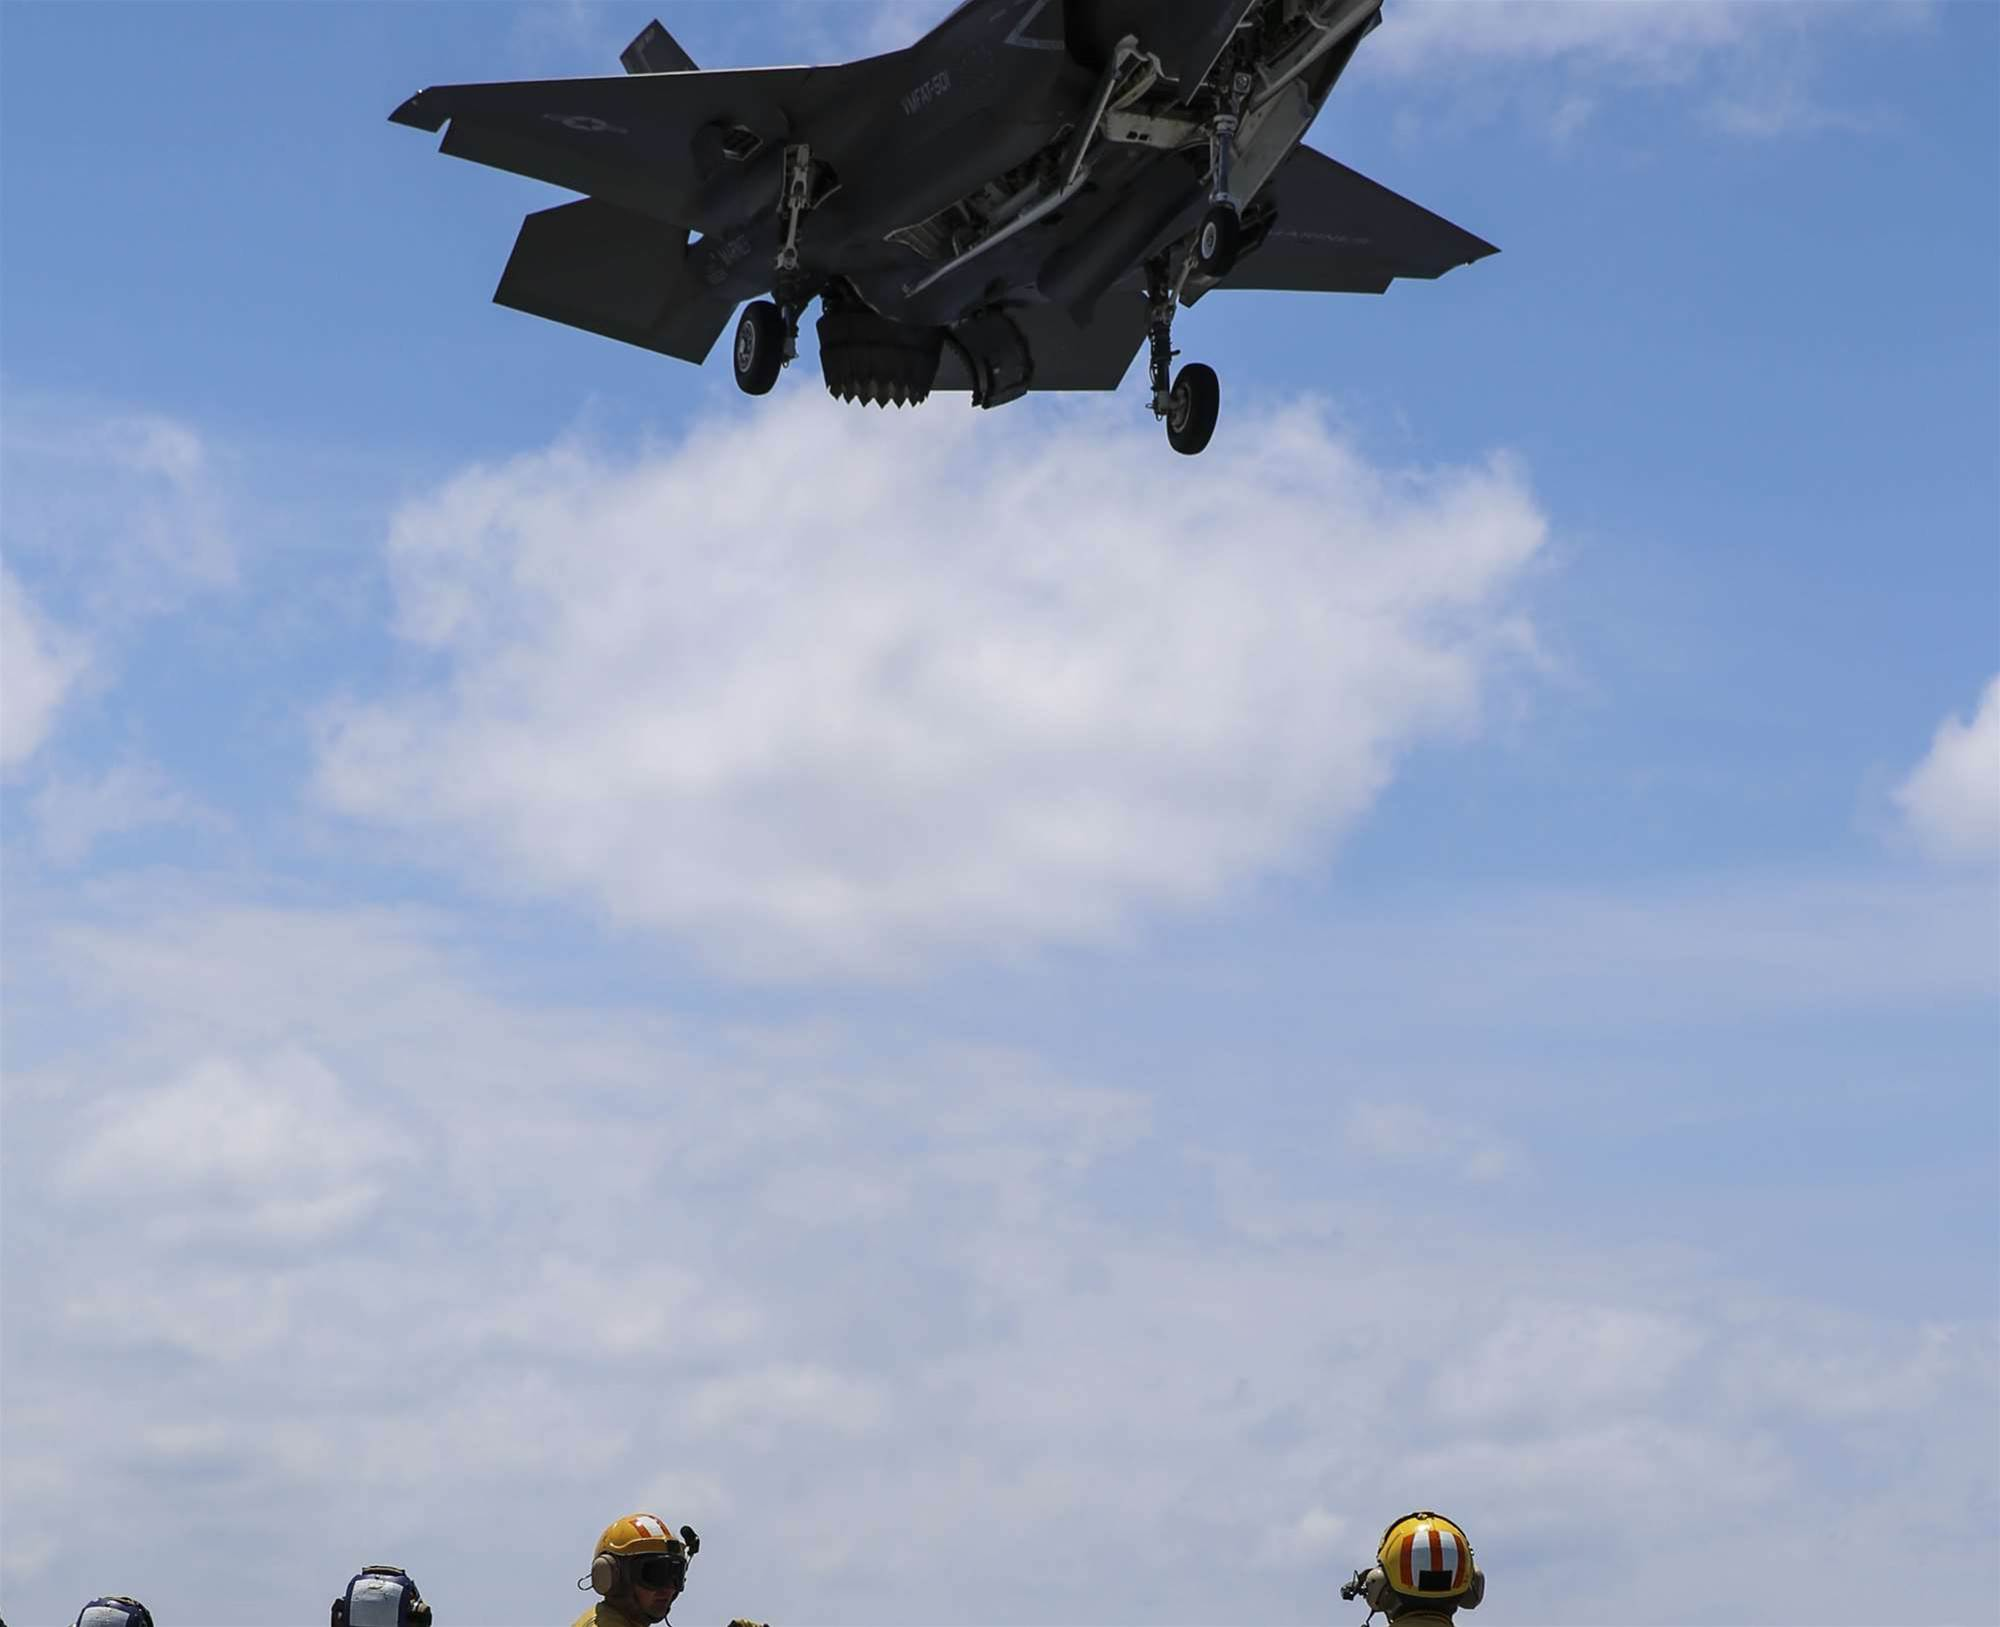 Yes, the F-35B can hover-land on a ship